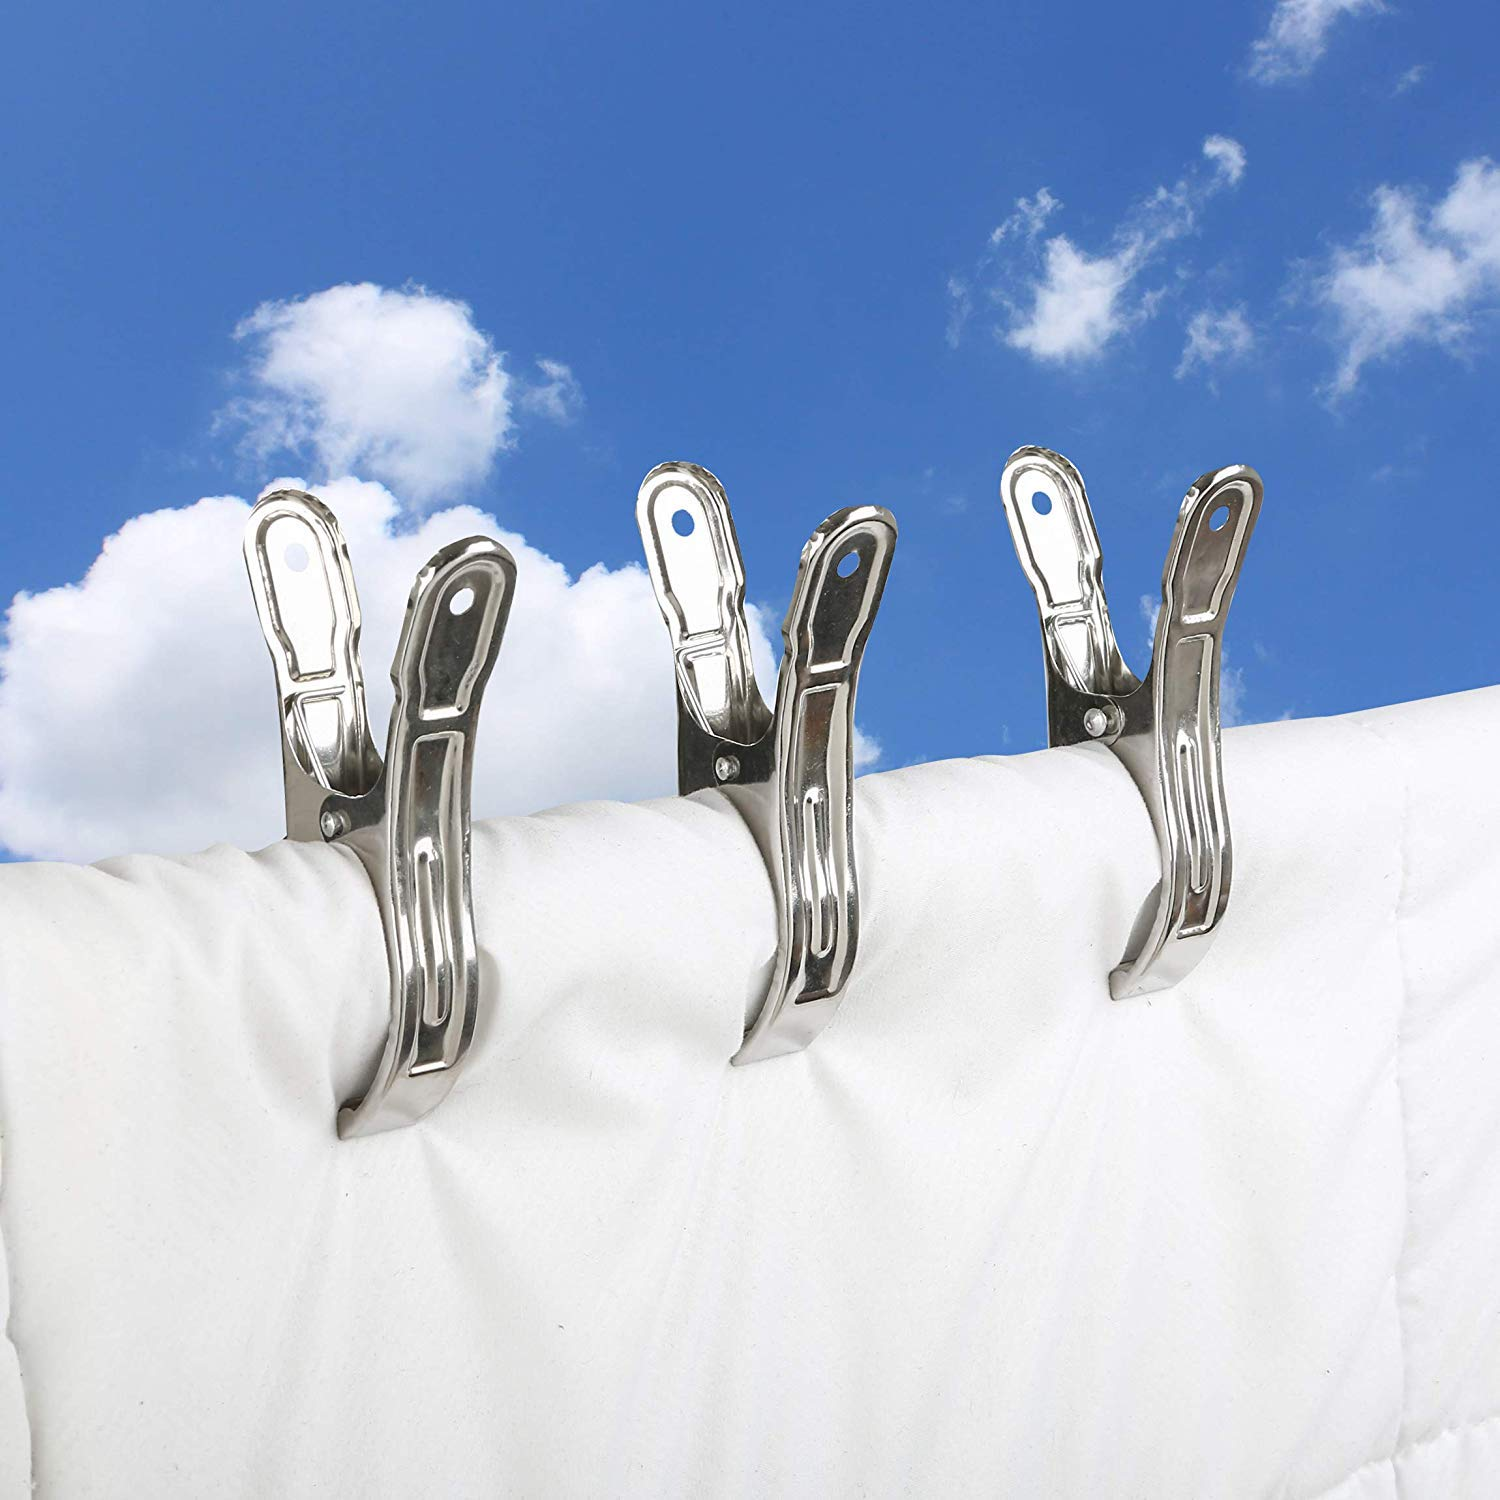 Set of 12 Pcs Akaas Sunshine Universal Stainless Steel Clothes Clips Hanging Clips Multipurpose Cloth Clips